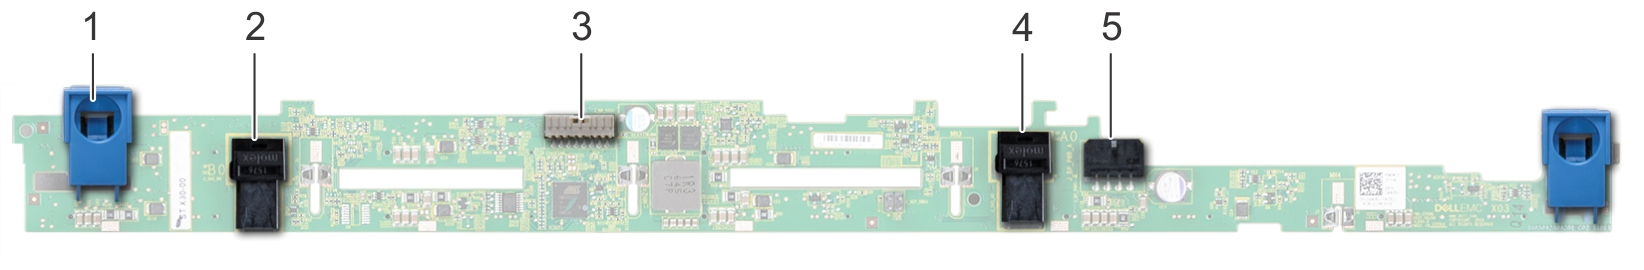 This image shows 8 X 2.5 hard drive backplane